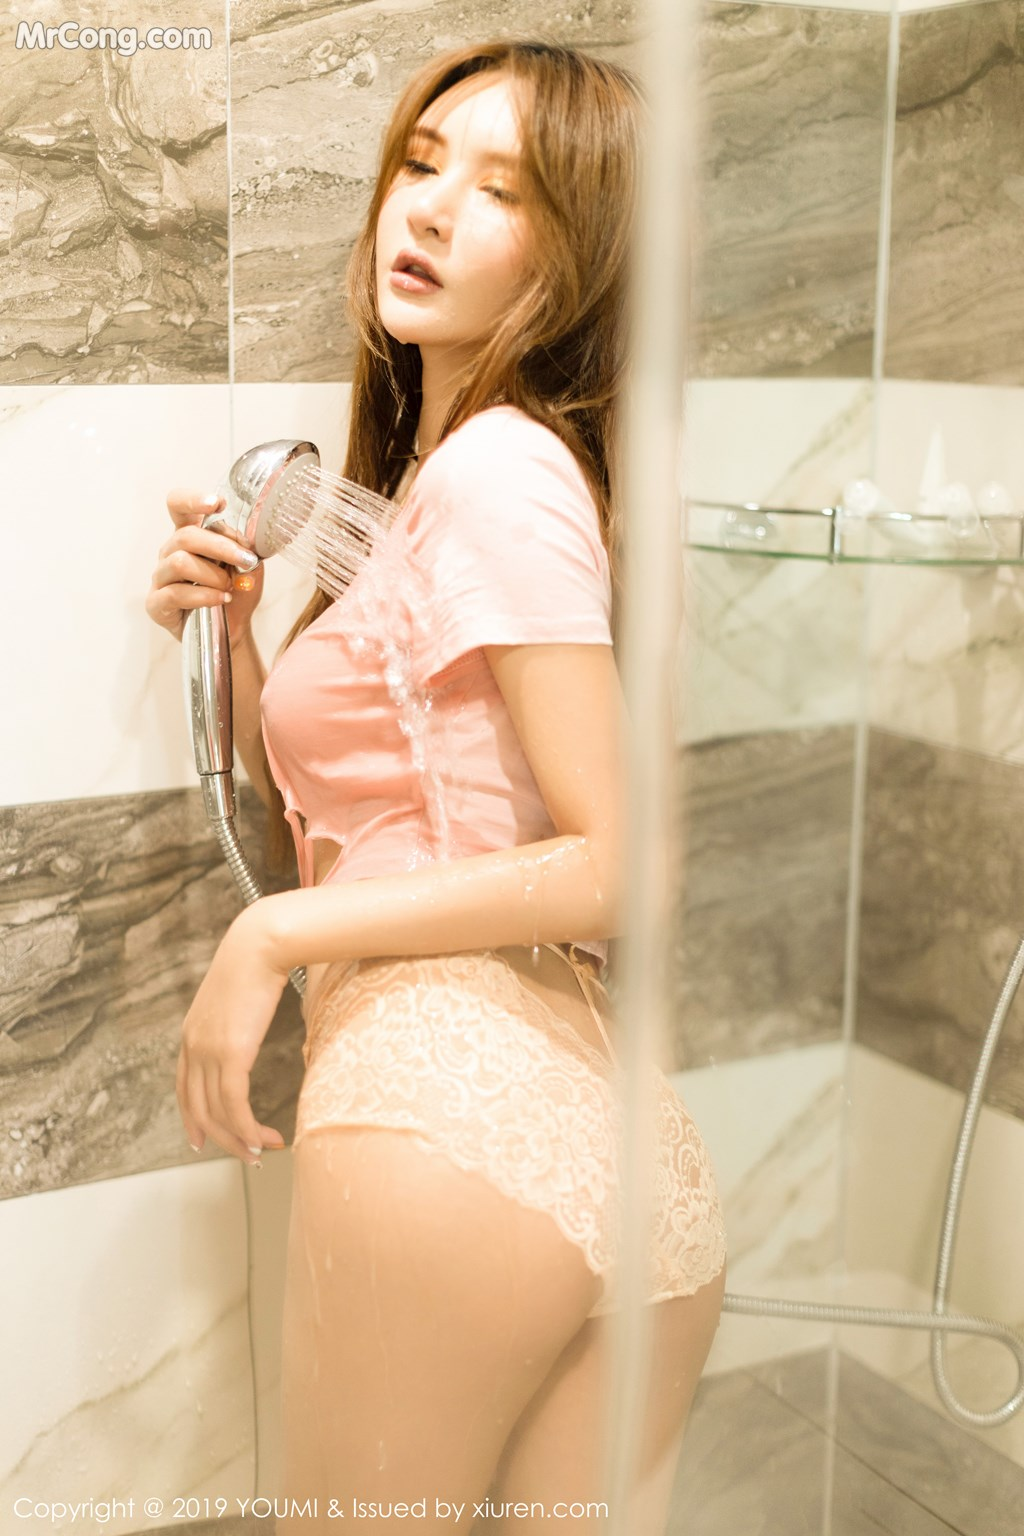 Image YouMi-Vol.342-Emily-MrCong.com-014 in post YouMi Vol.342: Emily顾奈奈 (42 ảnh)